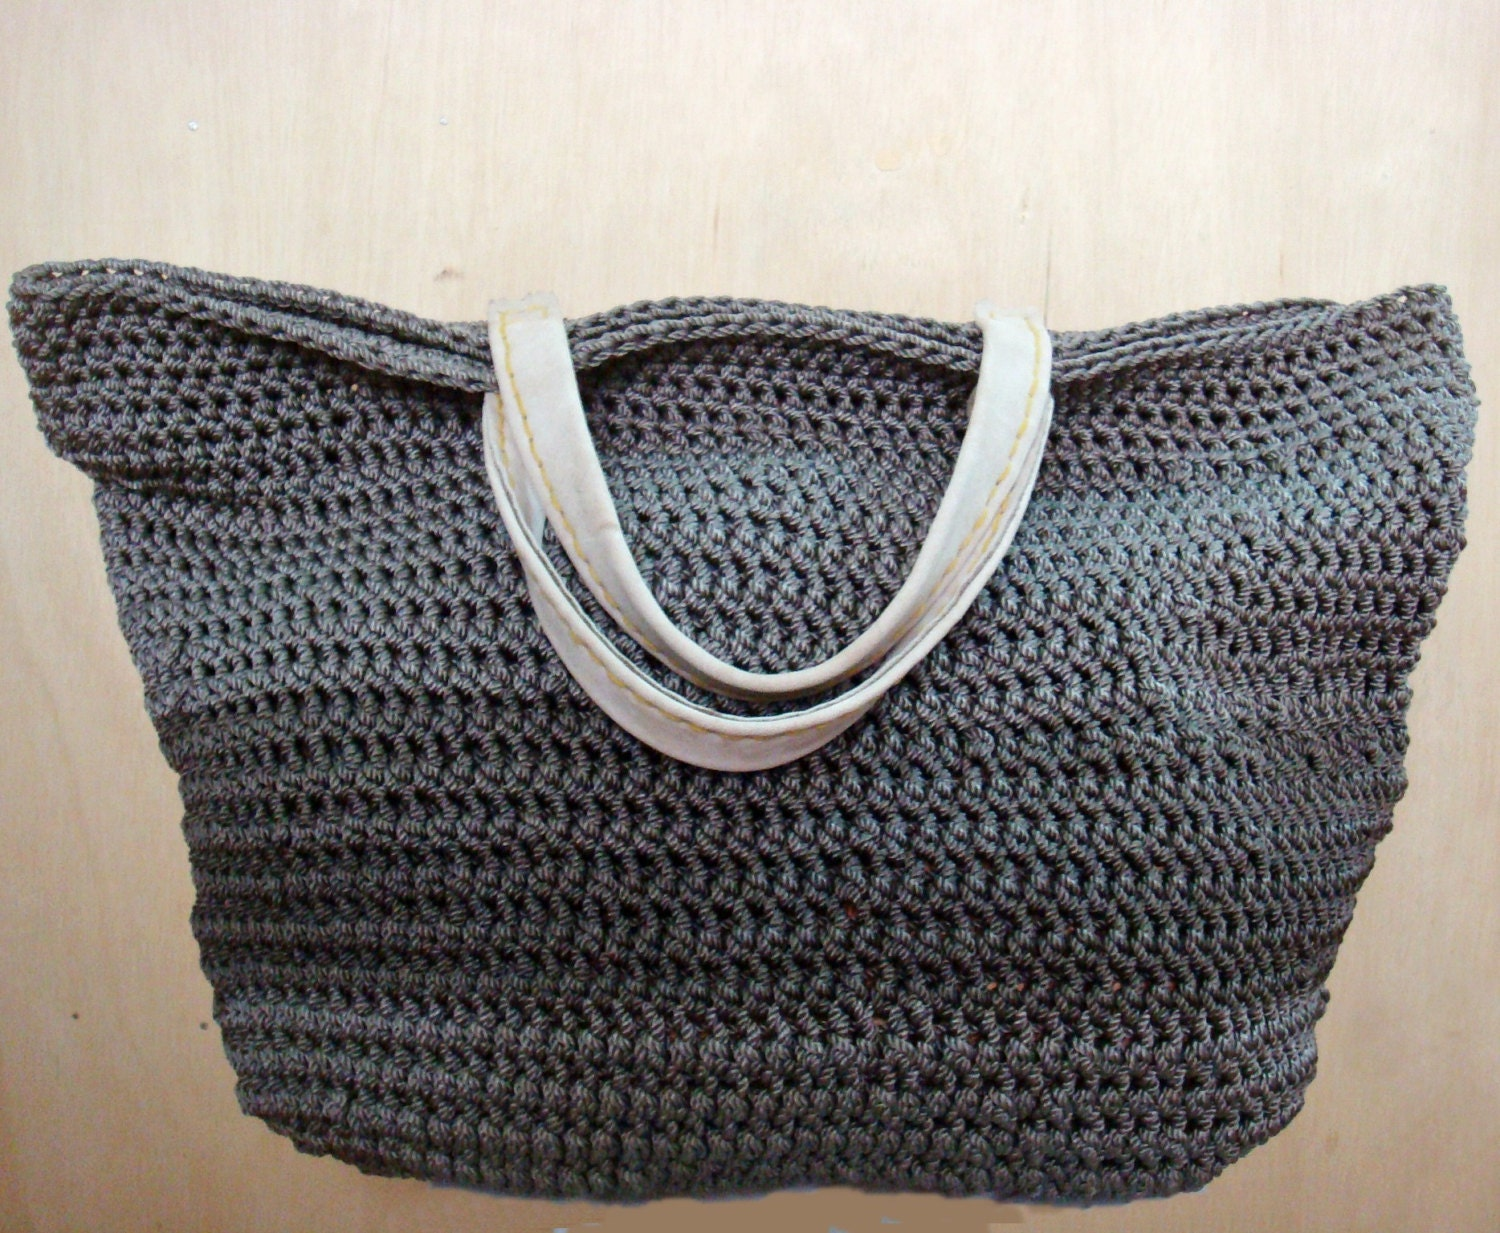 Leather Crochet Bag : Large Crochet Tote Bag in Ombre Grey with Natural Leather by faima